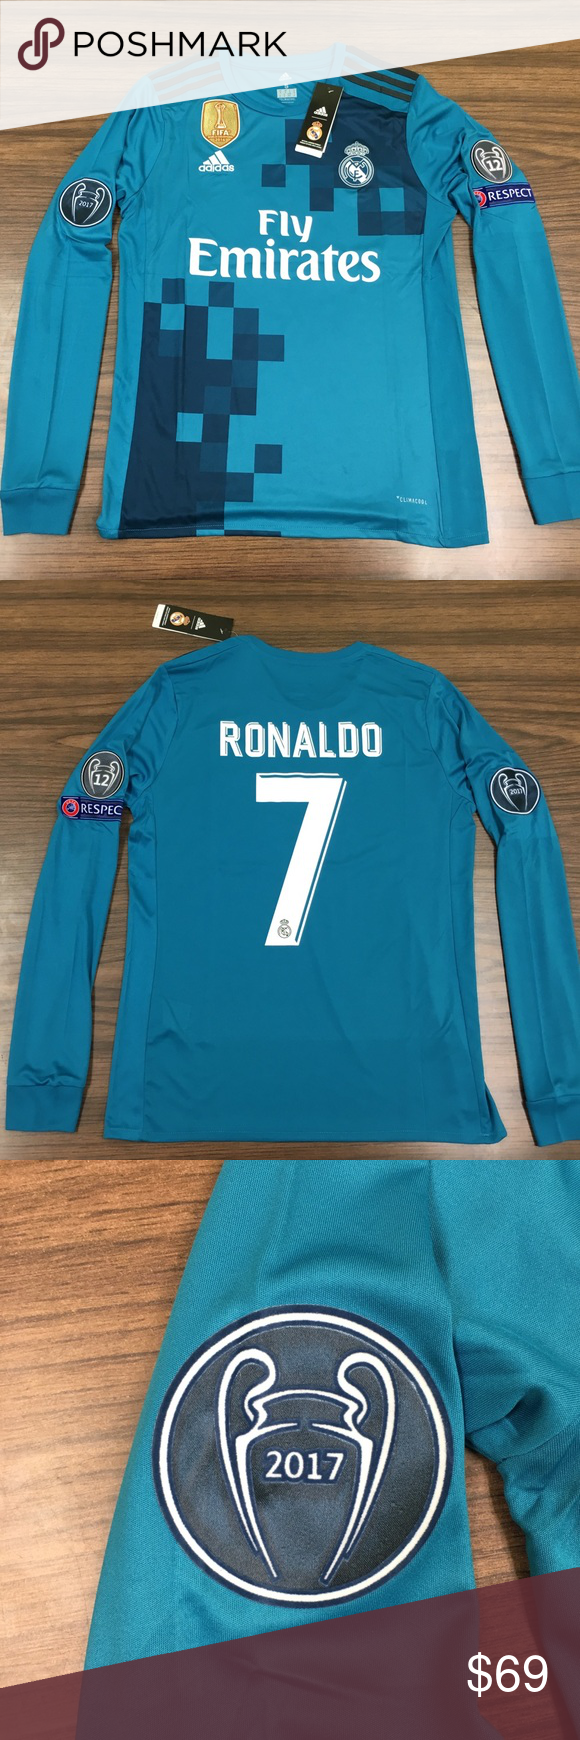 best loved 6d827 49151 Real Madrid Ronaldo Third long sleeve jersey 2017 Arguably ...